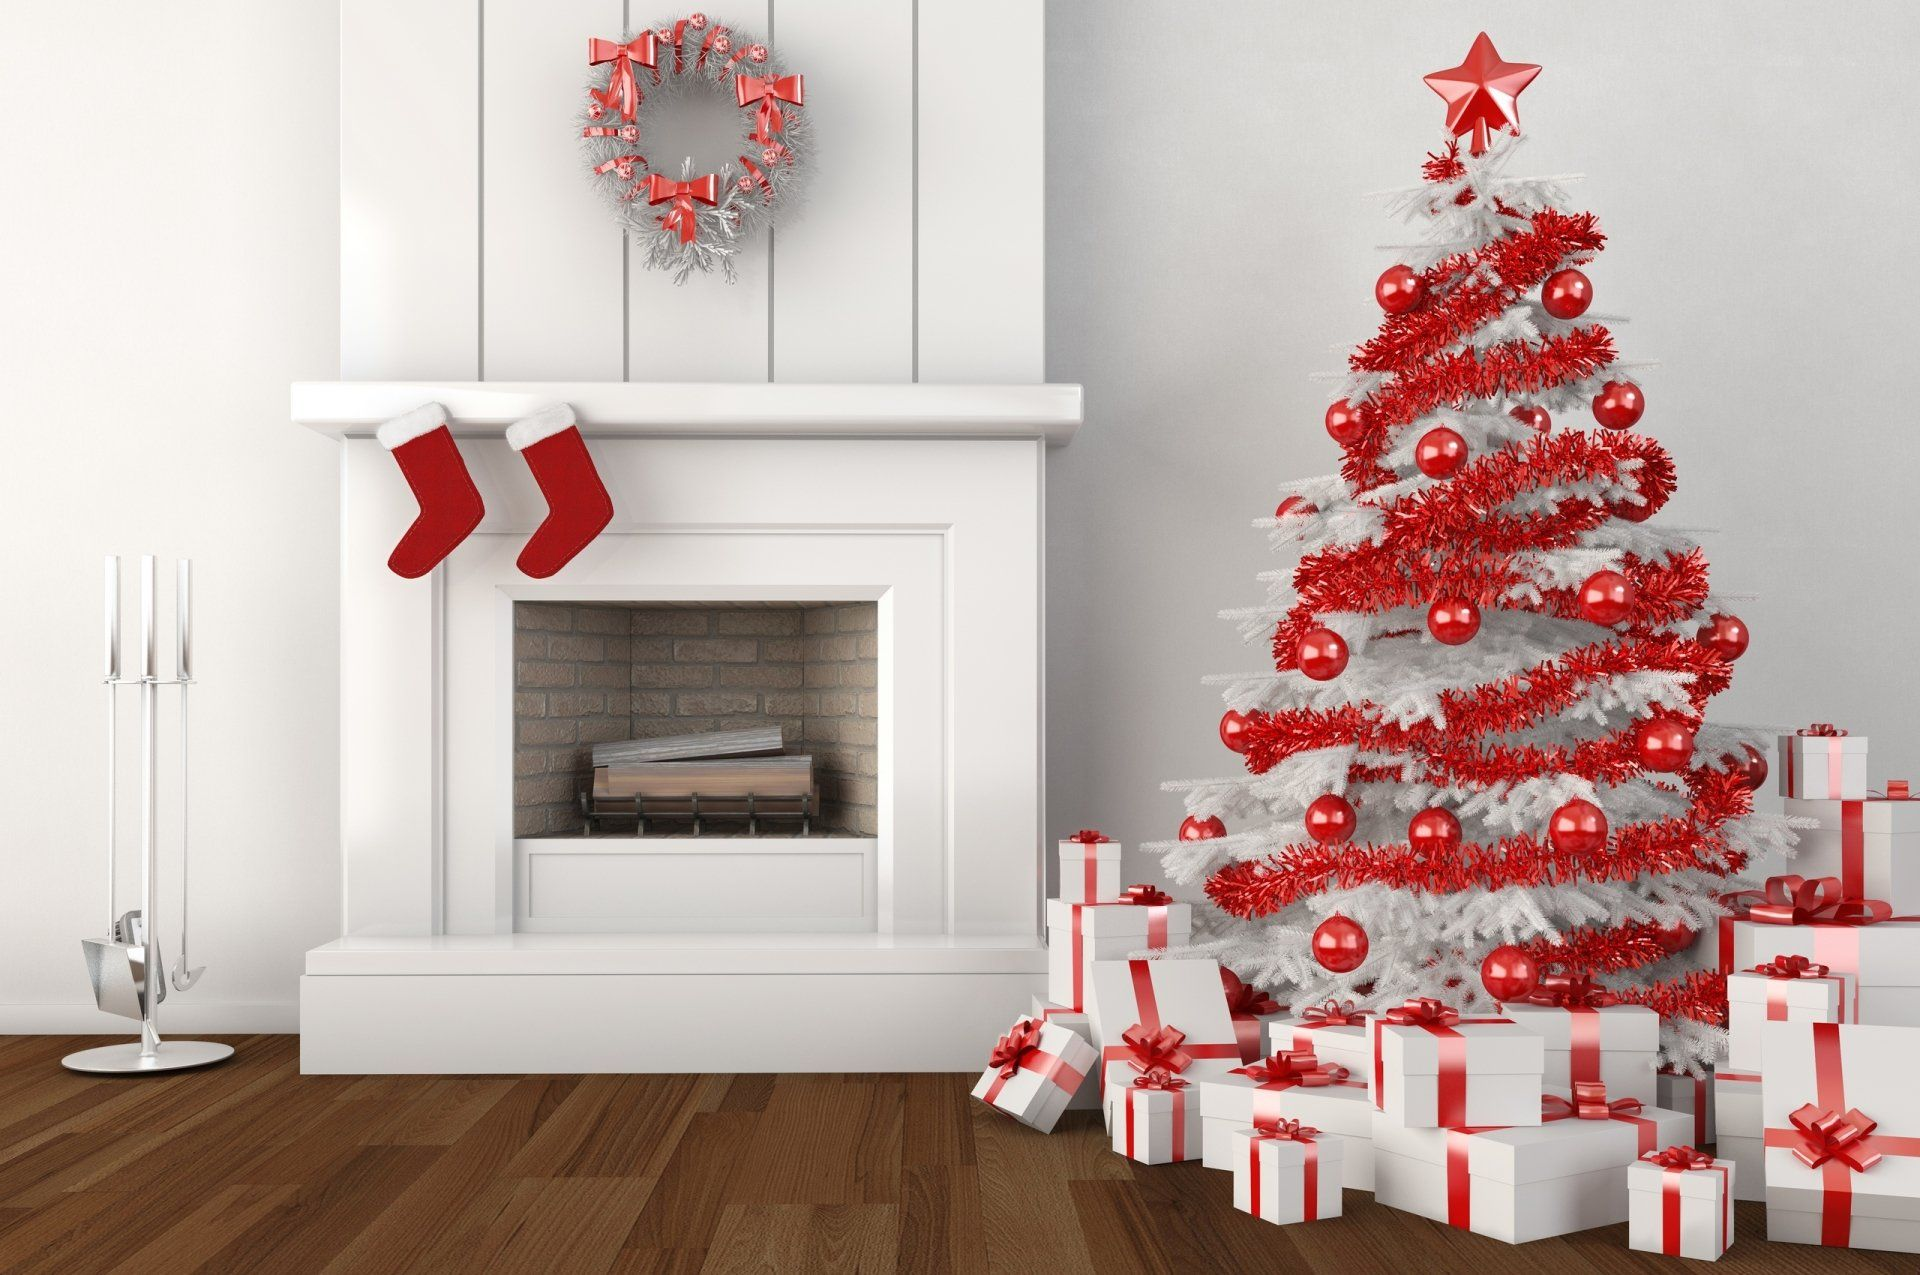 Holiday Christmas Christmas Tree Christmas Ornaments Gift Fireplace Red White Wallpaper White Christmas Trees Christmas Tree With Gifts Christmas Fireplace